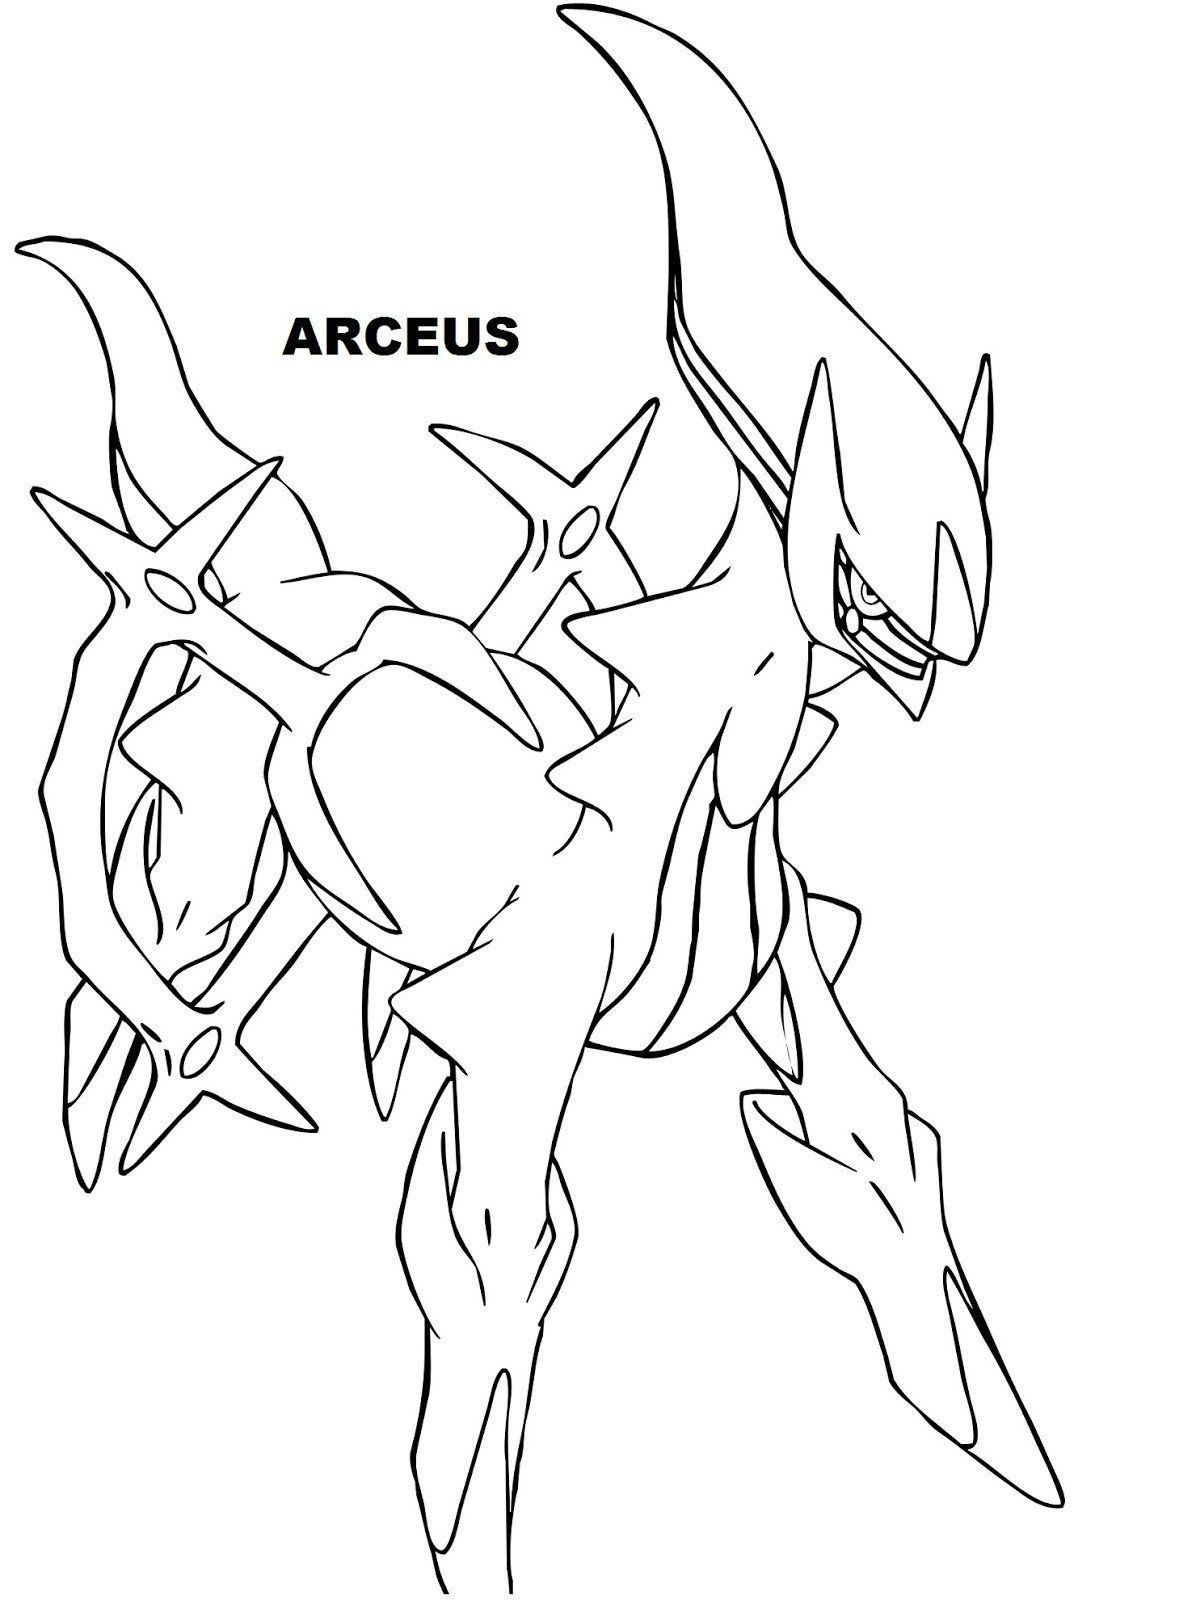 Legendary Pokemon Coloring Pages Free Legendary Pokemon Coloring Pages For Kids In 2020 Pokemon Color In 2021 Pokemon Coloring Pages Coloring Pages Star Coloring Pages